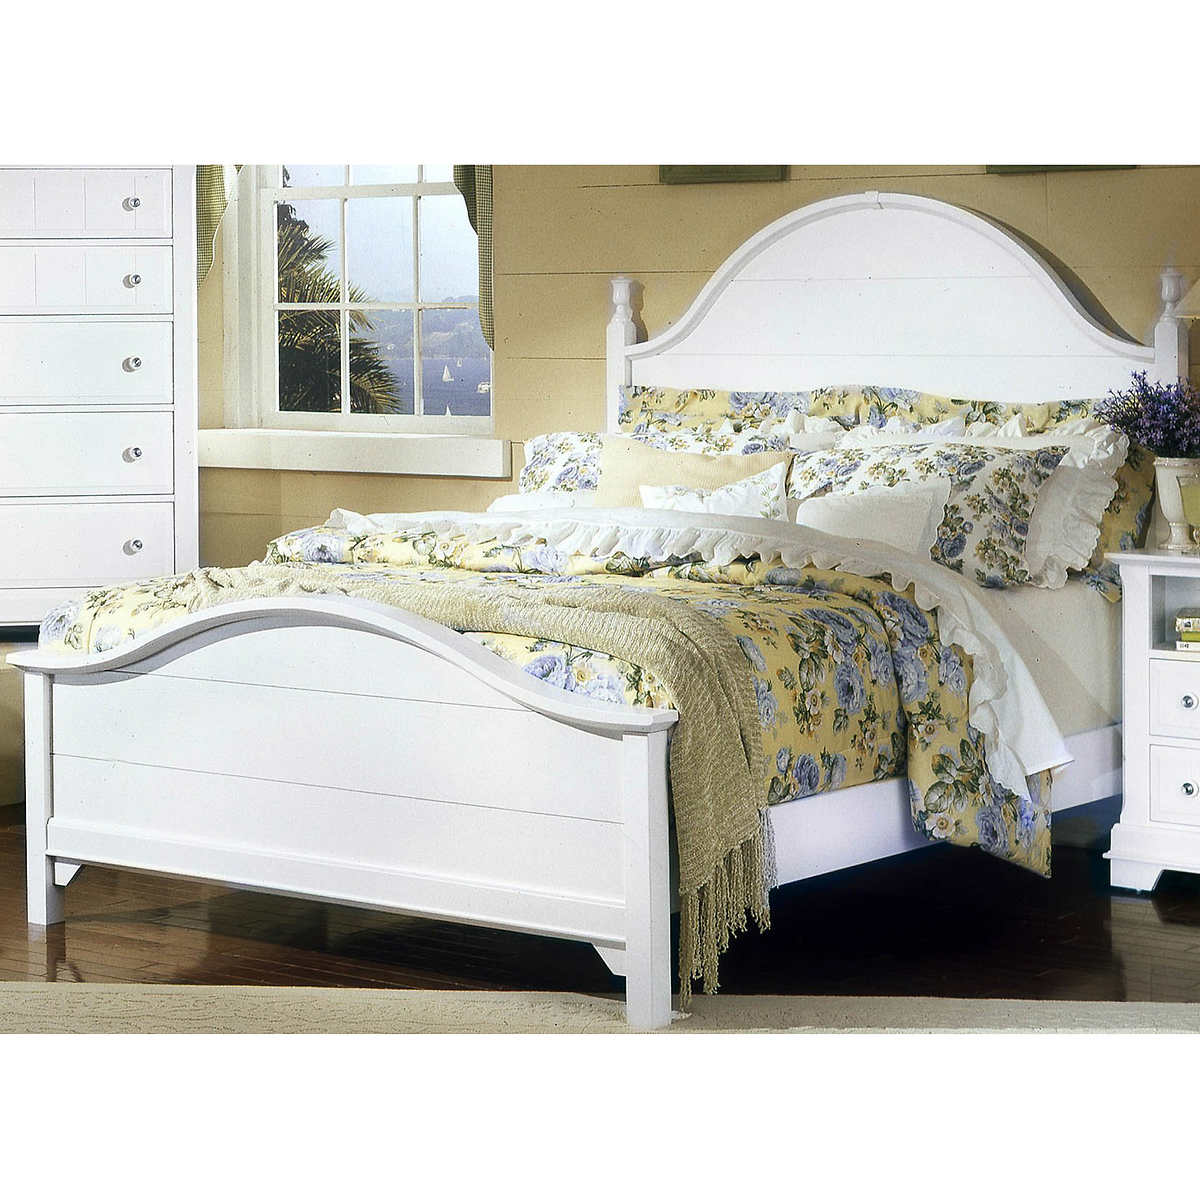 Bed furniture with price - Avery King Bed